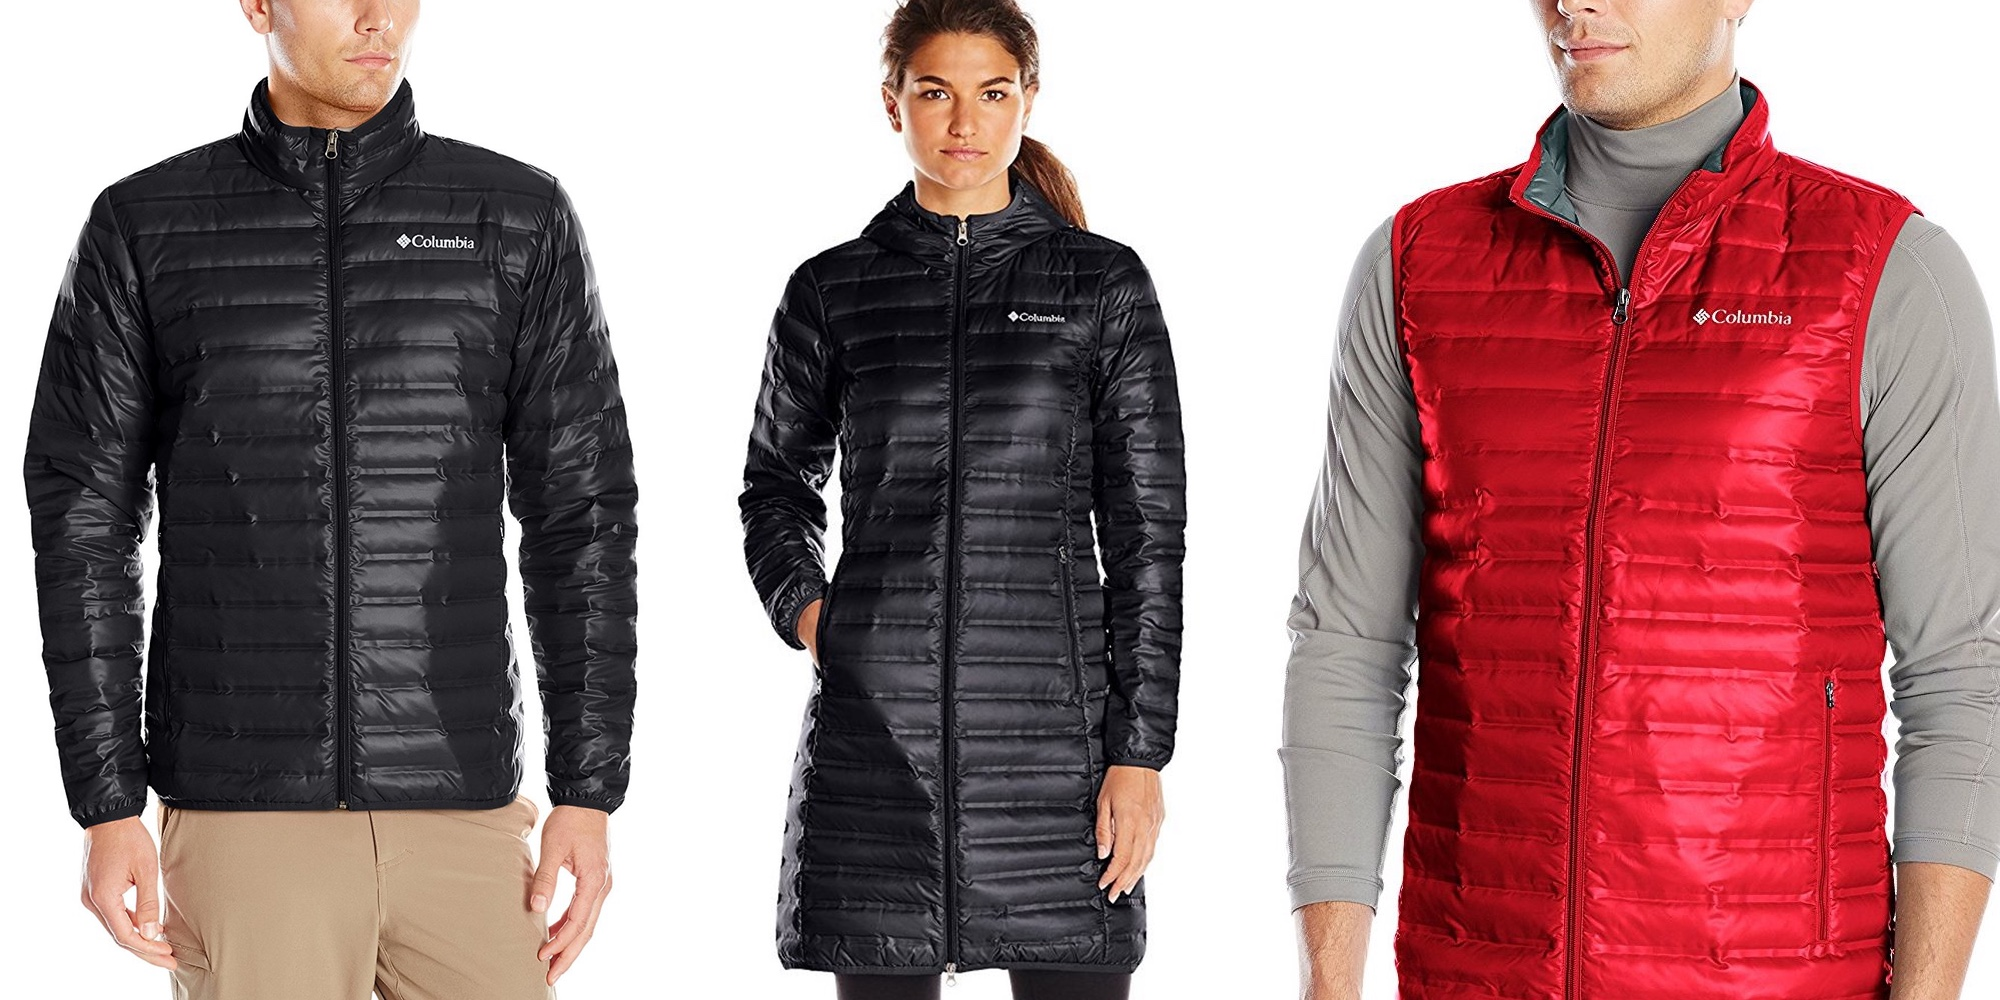 Amazon Columbia End of Season Sale: up to 50% off jackets, t-shirts, pants & more from $10